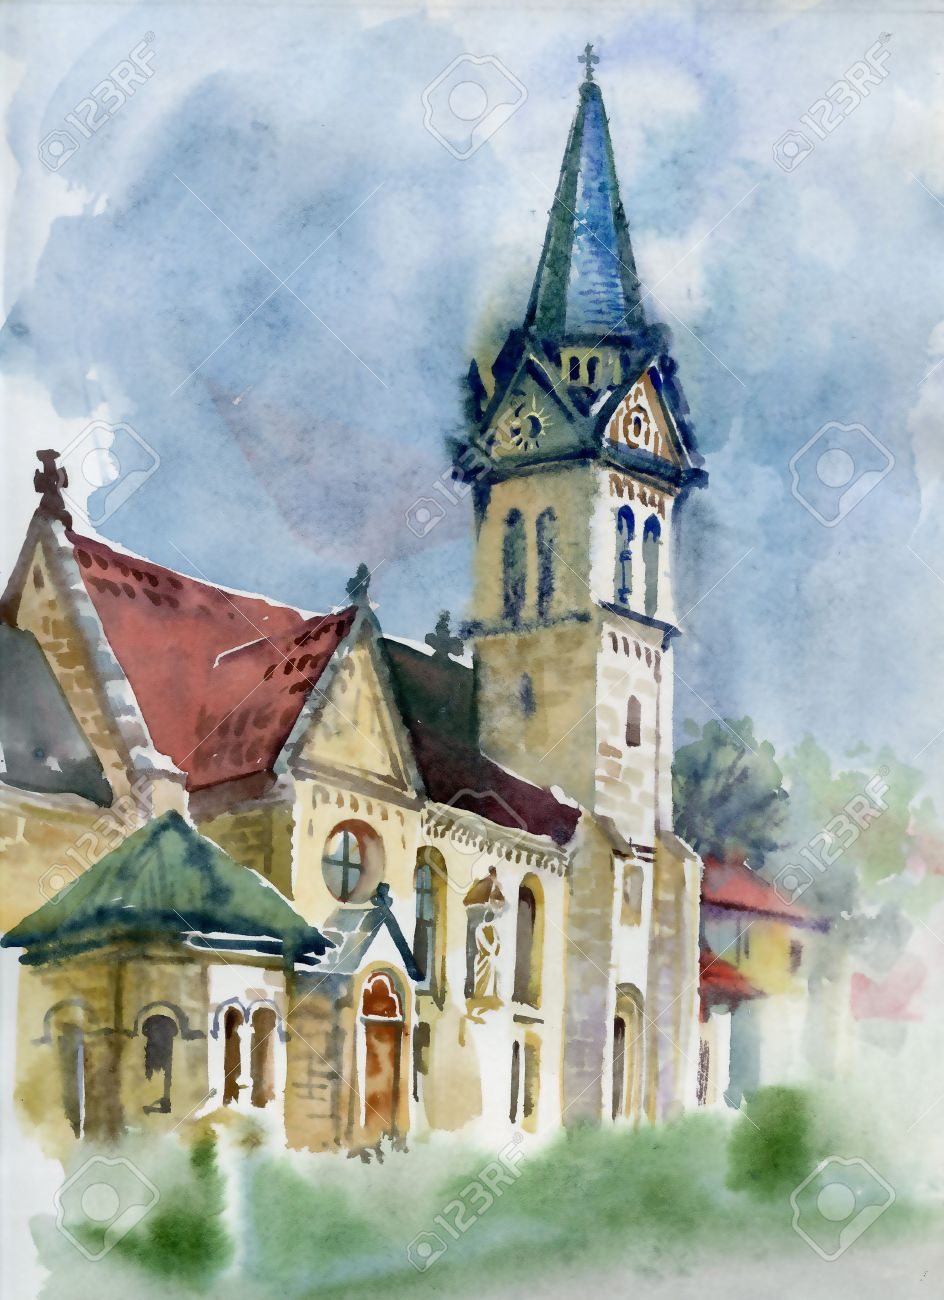 watercolor landscape collection village life stock photo picture